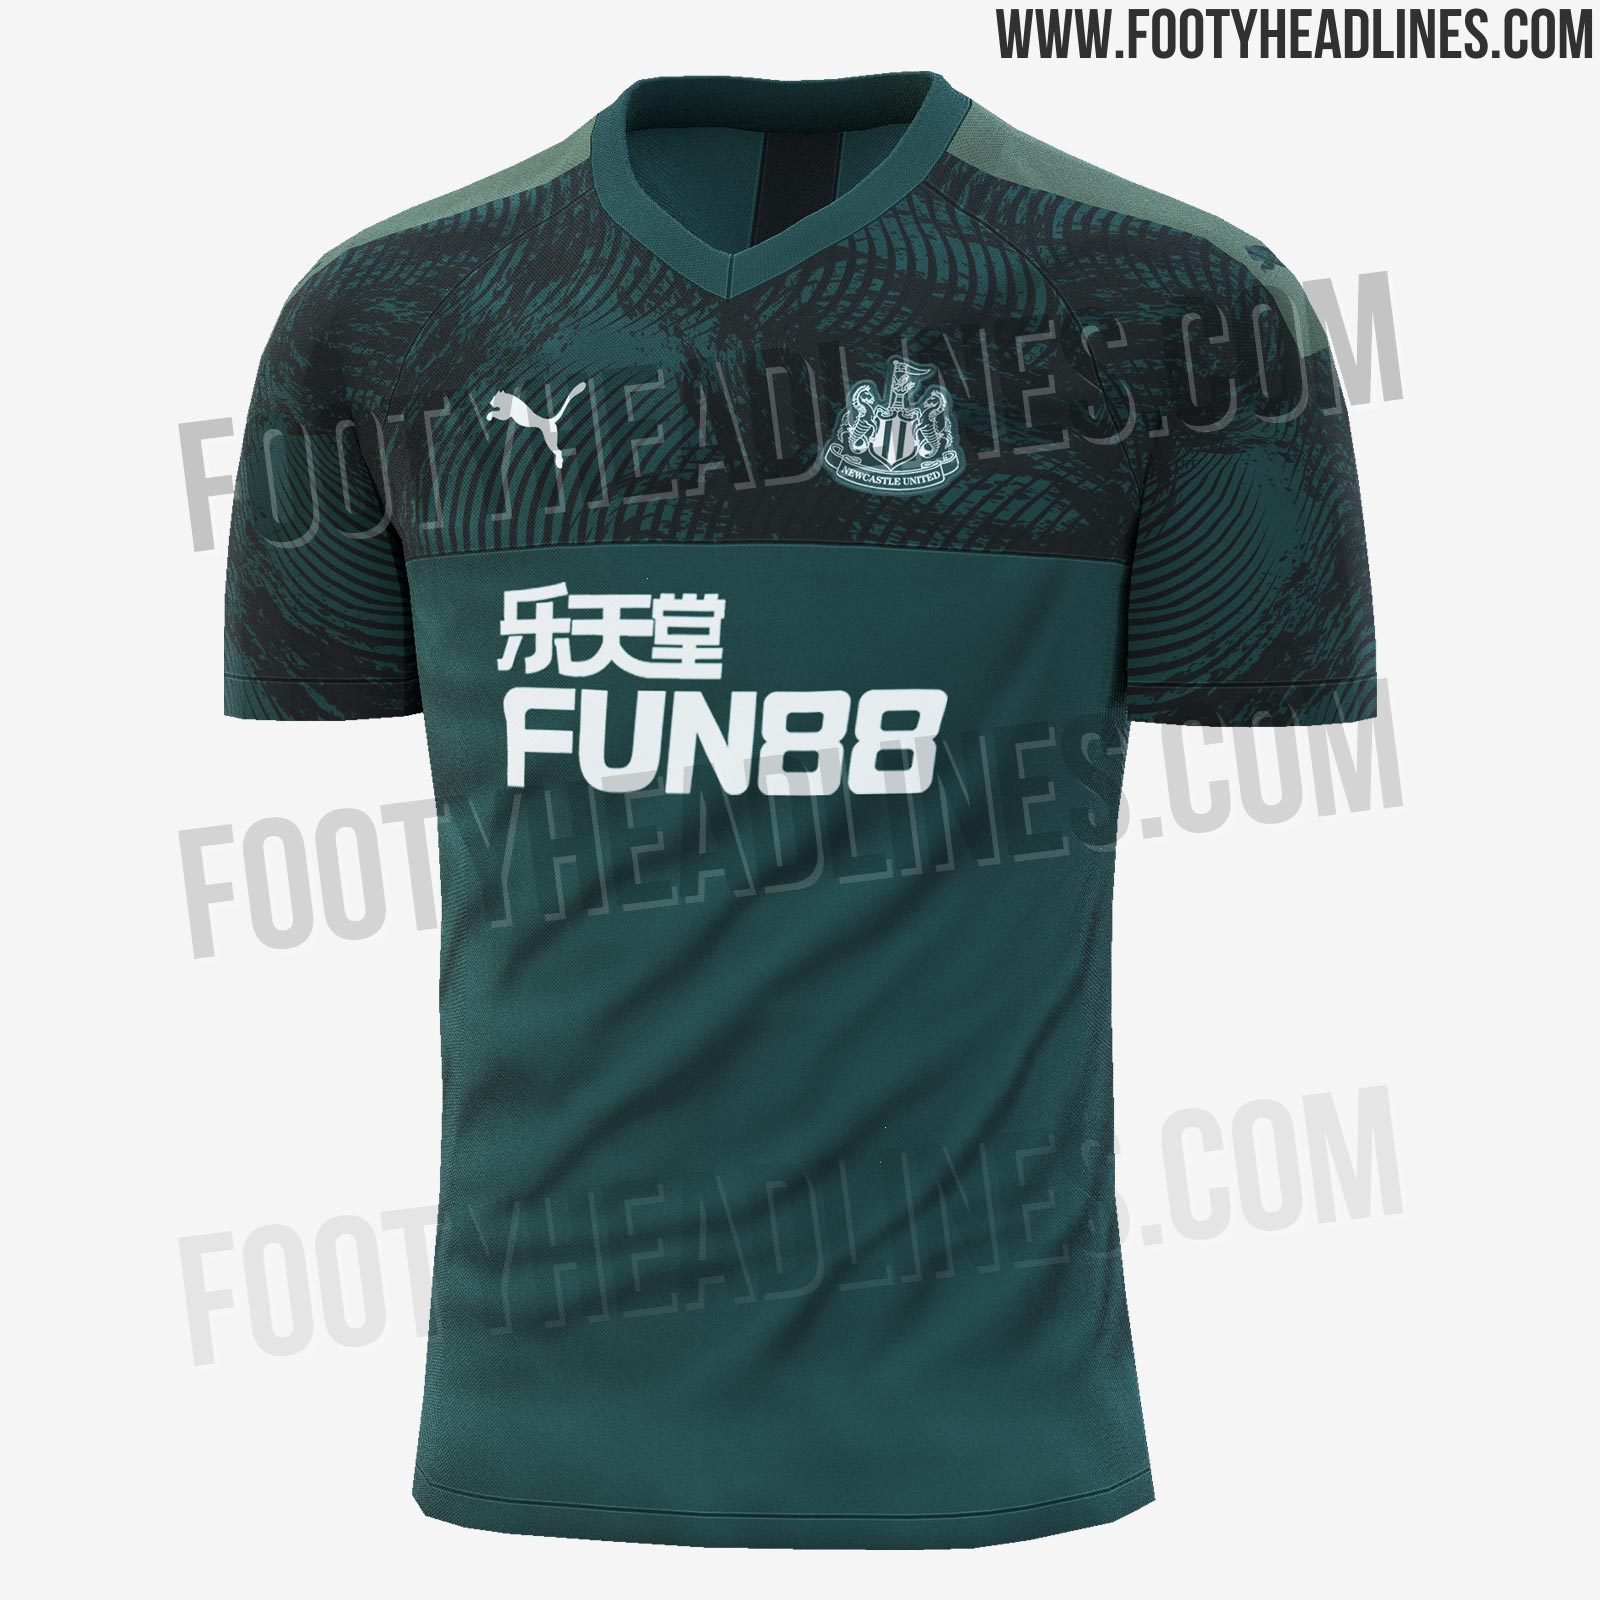 90b42e62f049 Not a unique design but based on the 'Cup Jersey Core' teamwear template,  the Newcastle United 2019-2020 third jersey is dark green with black  accents and ...